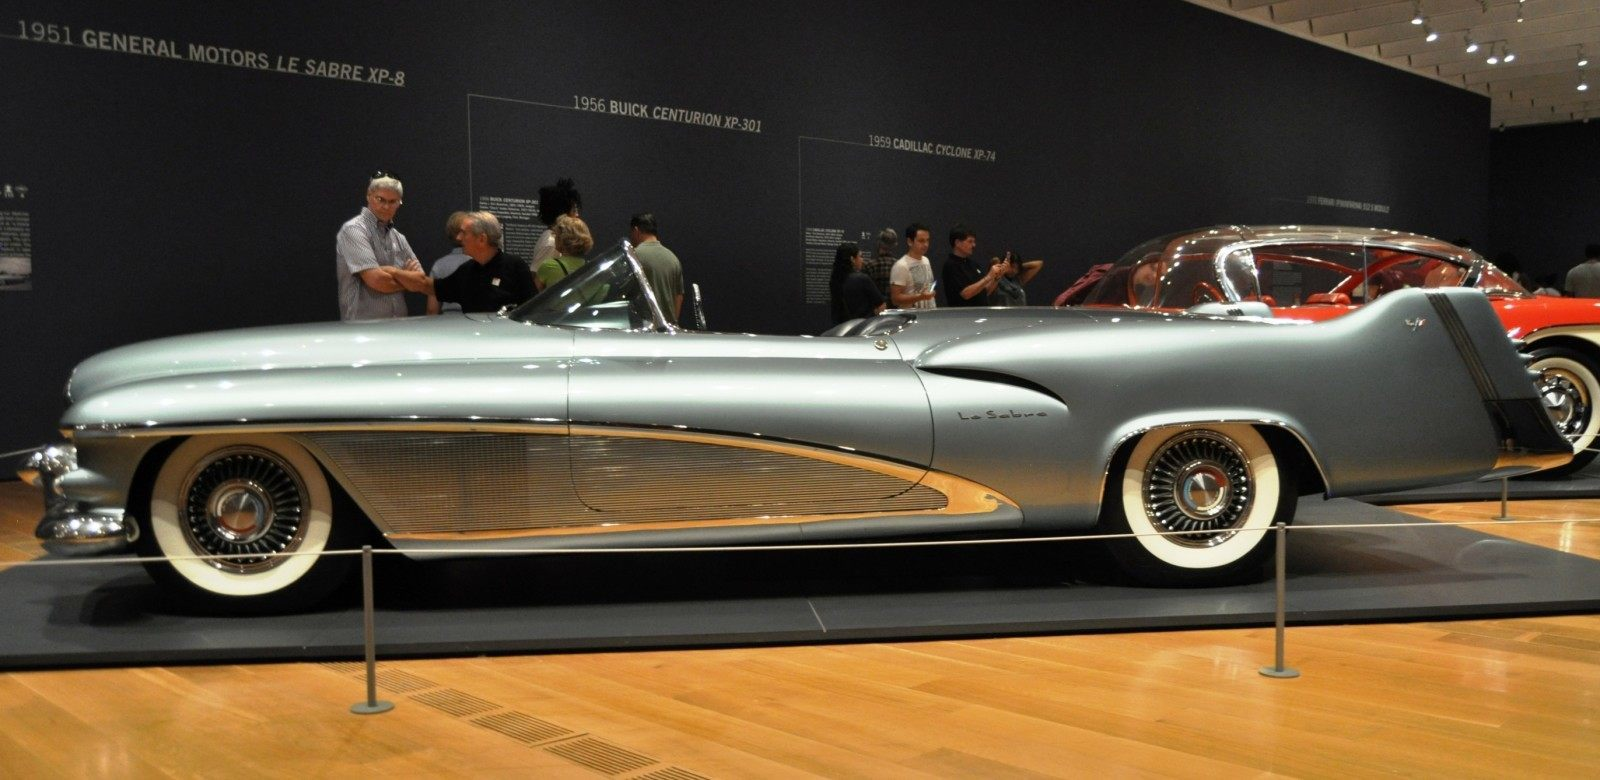 Atlanta Dream Cars - 1951 General Motors LeSabre XP-8 Struck Gold With Yank Tank Ethos of 1950s 19